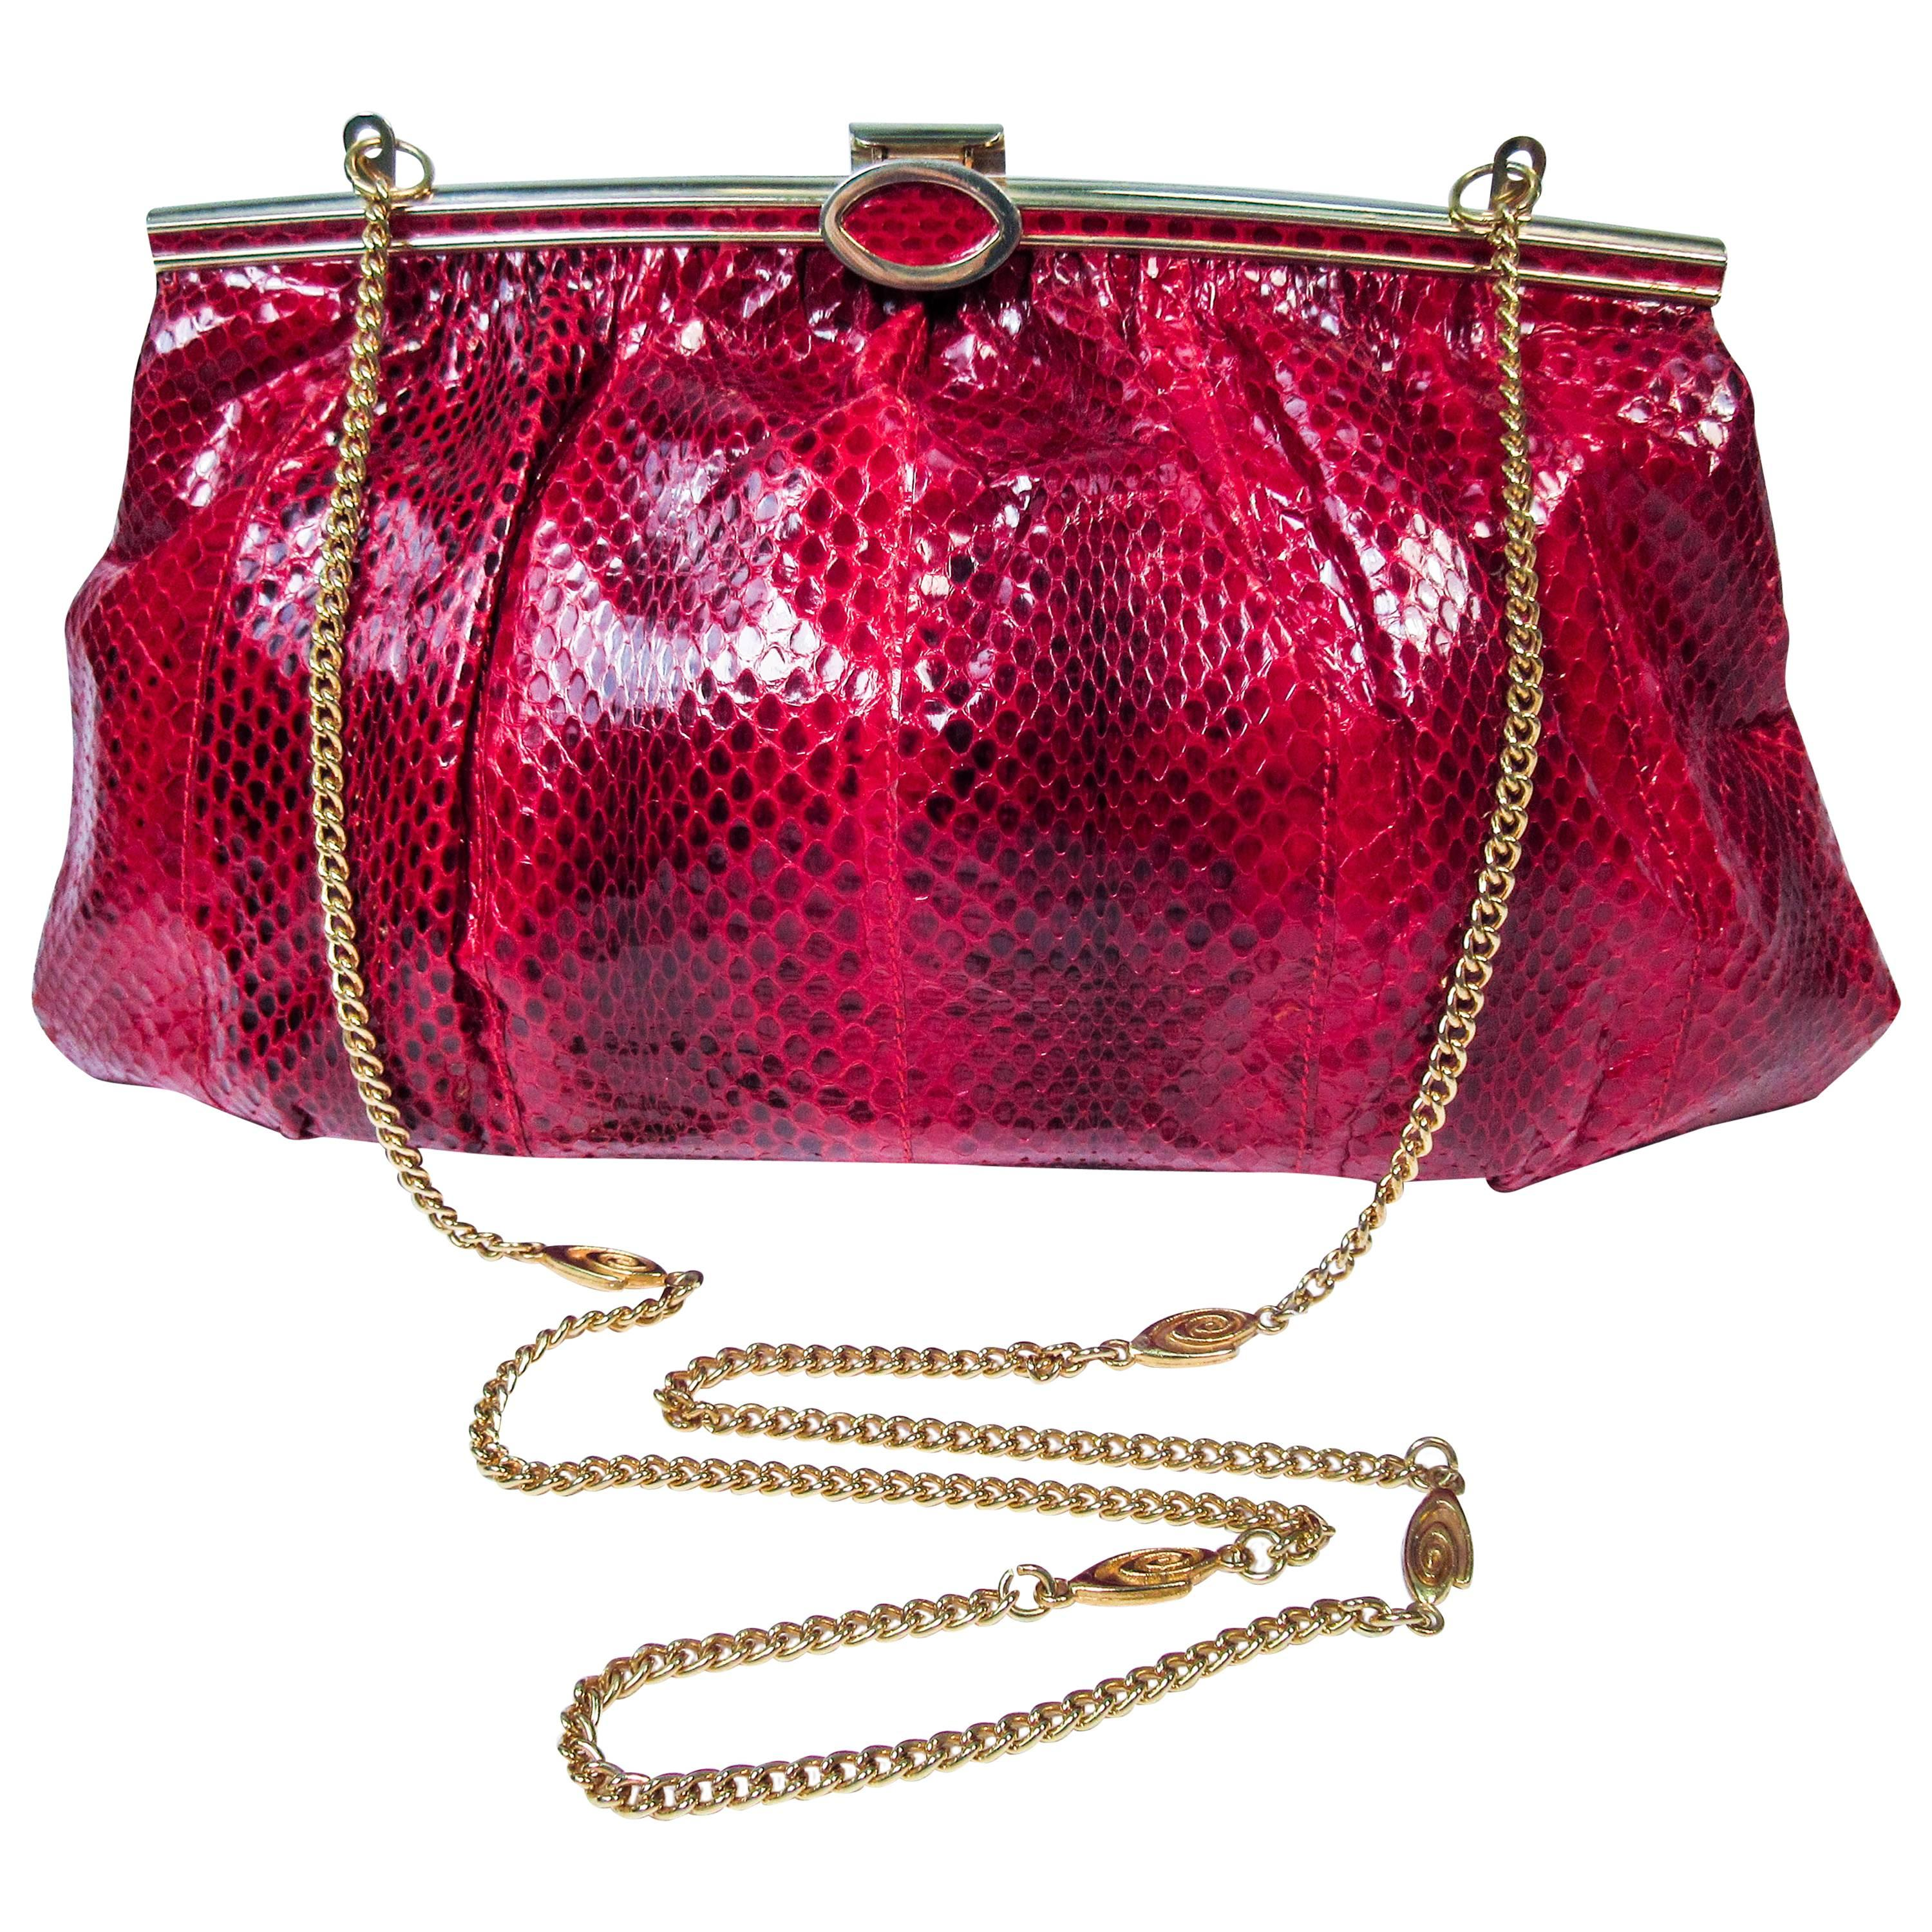 1stdibs Red Python Cross Body Clutch With Gold Hardware & Strap Made In Spain e26joh